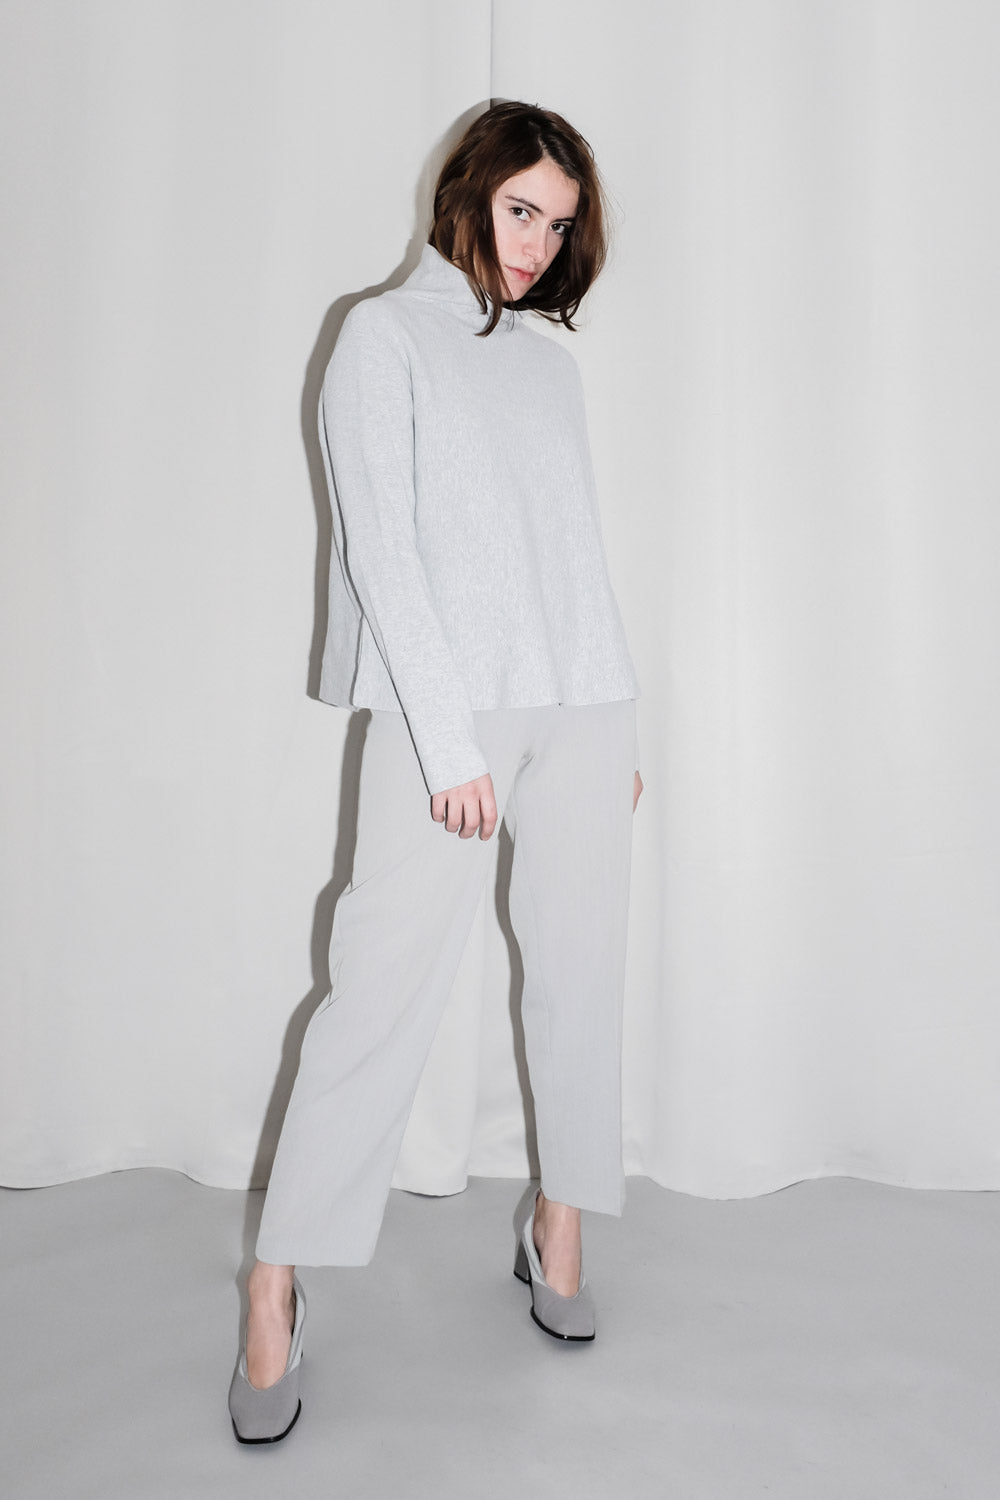 0017_COS A-LINE HIGH NECK SWEATER